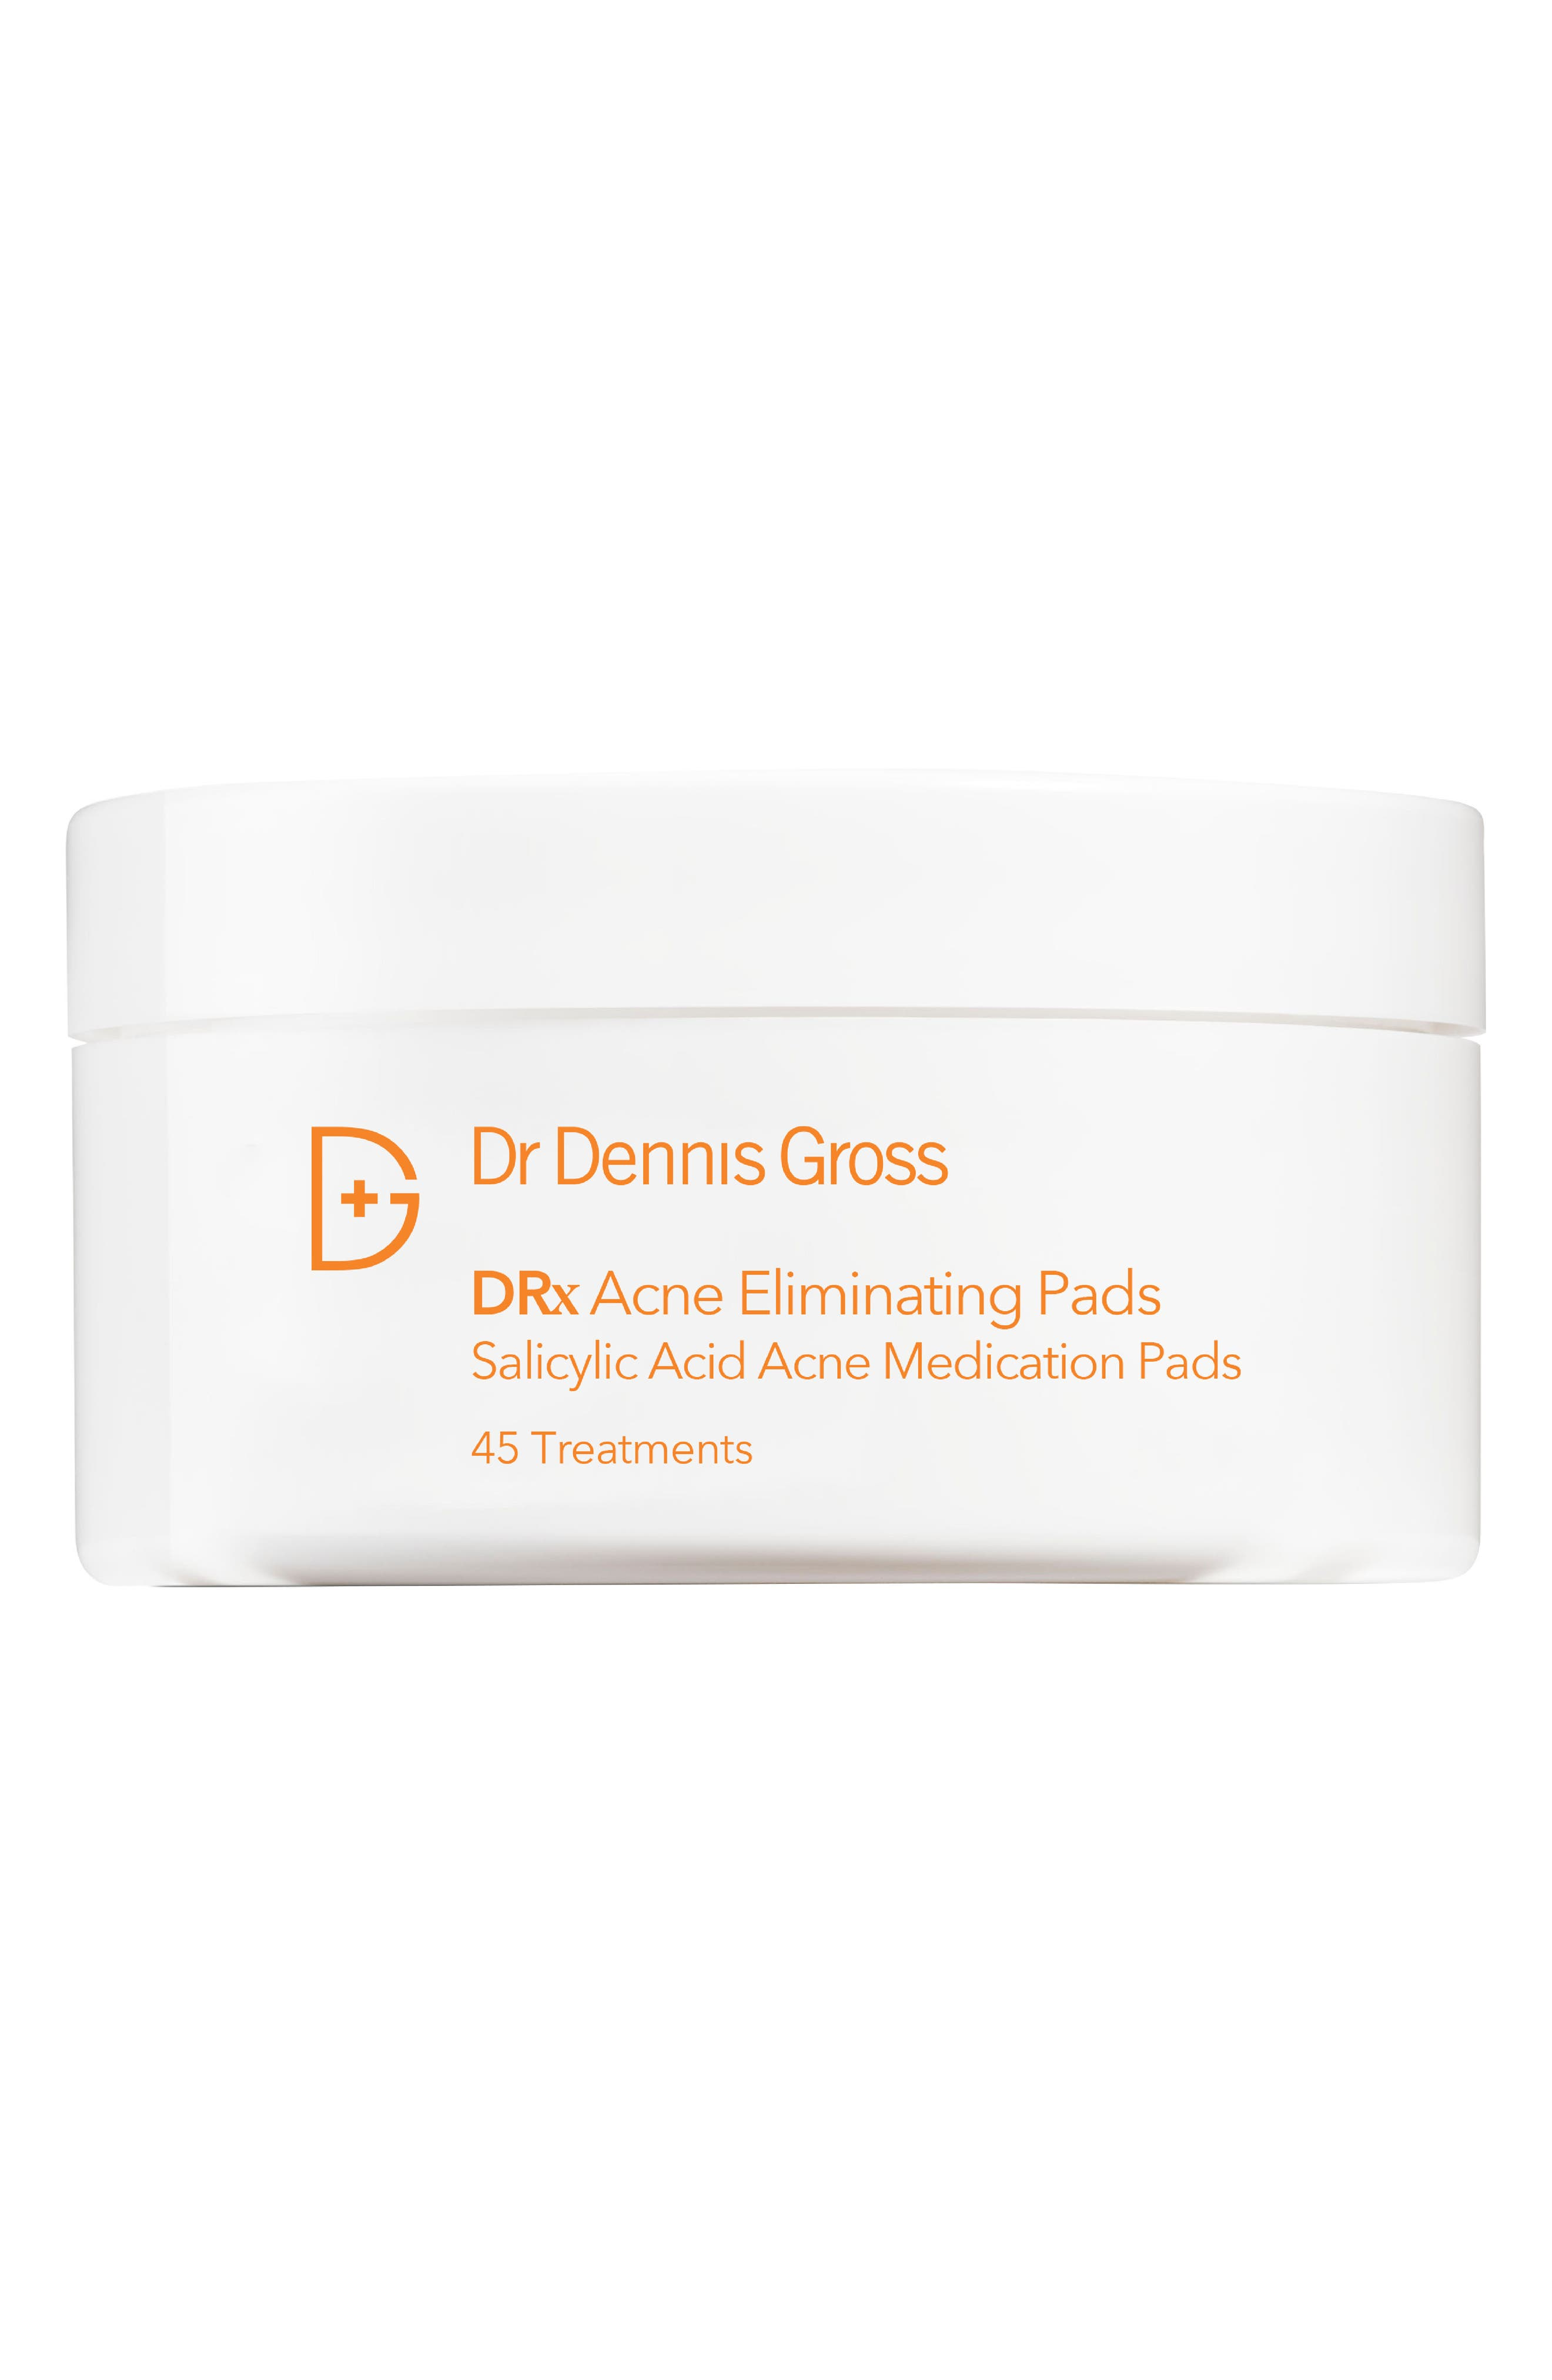 Alternate Image 1 Selected - Dr. Dennis Gross Skincare One Step Acne Eliminating Pads - 45 Applications